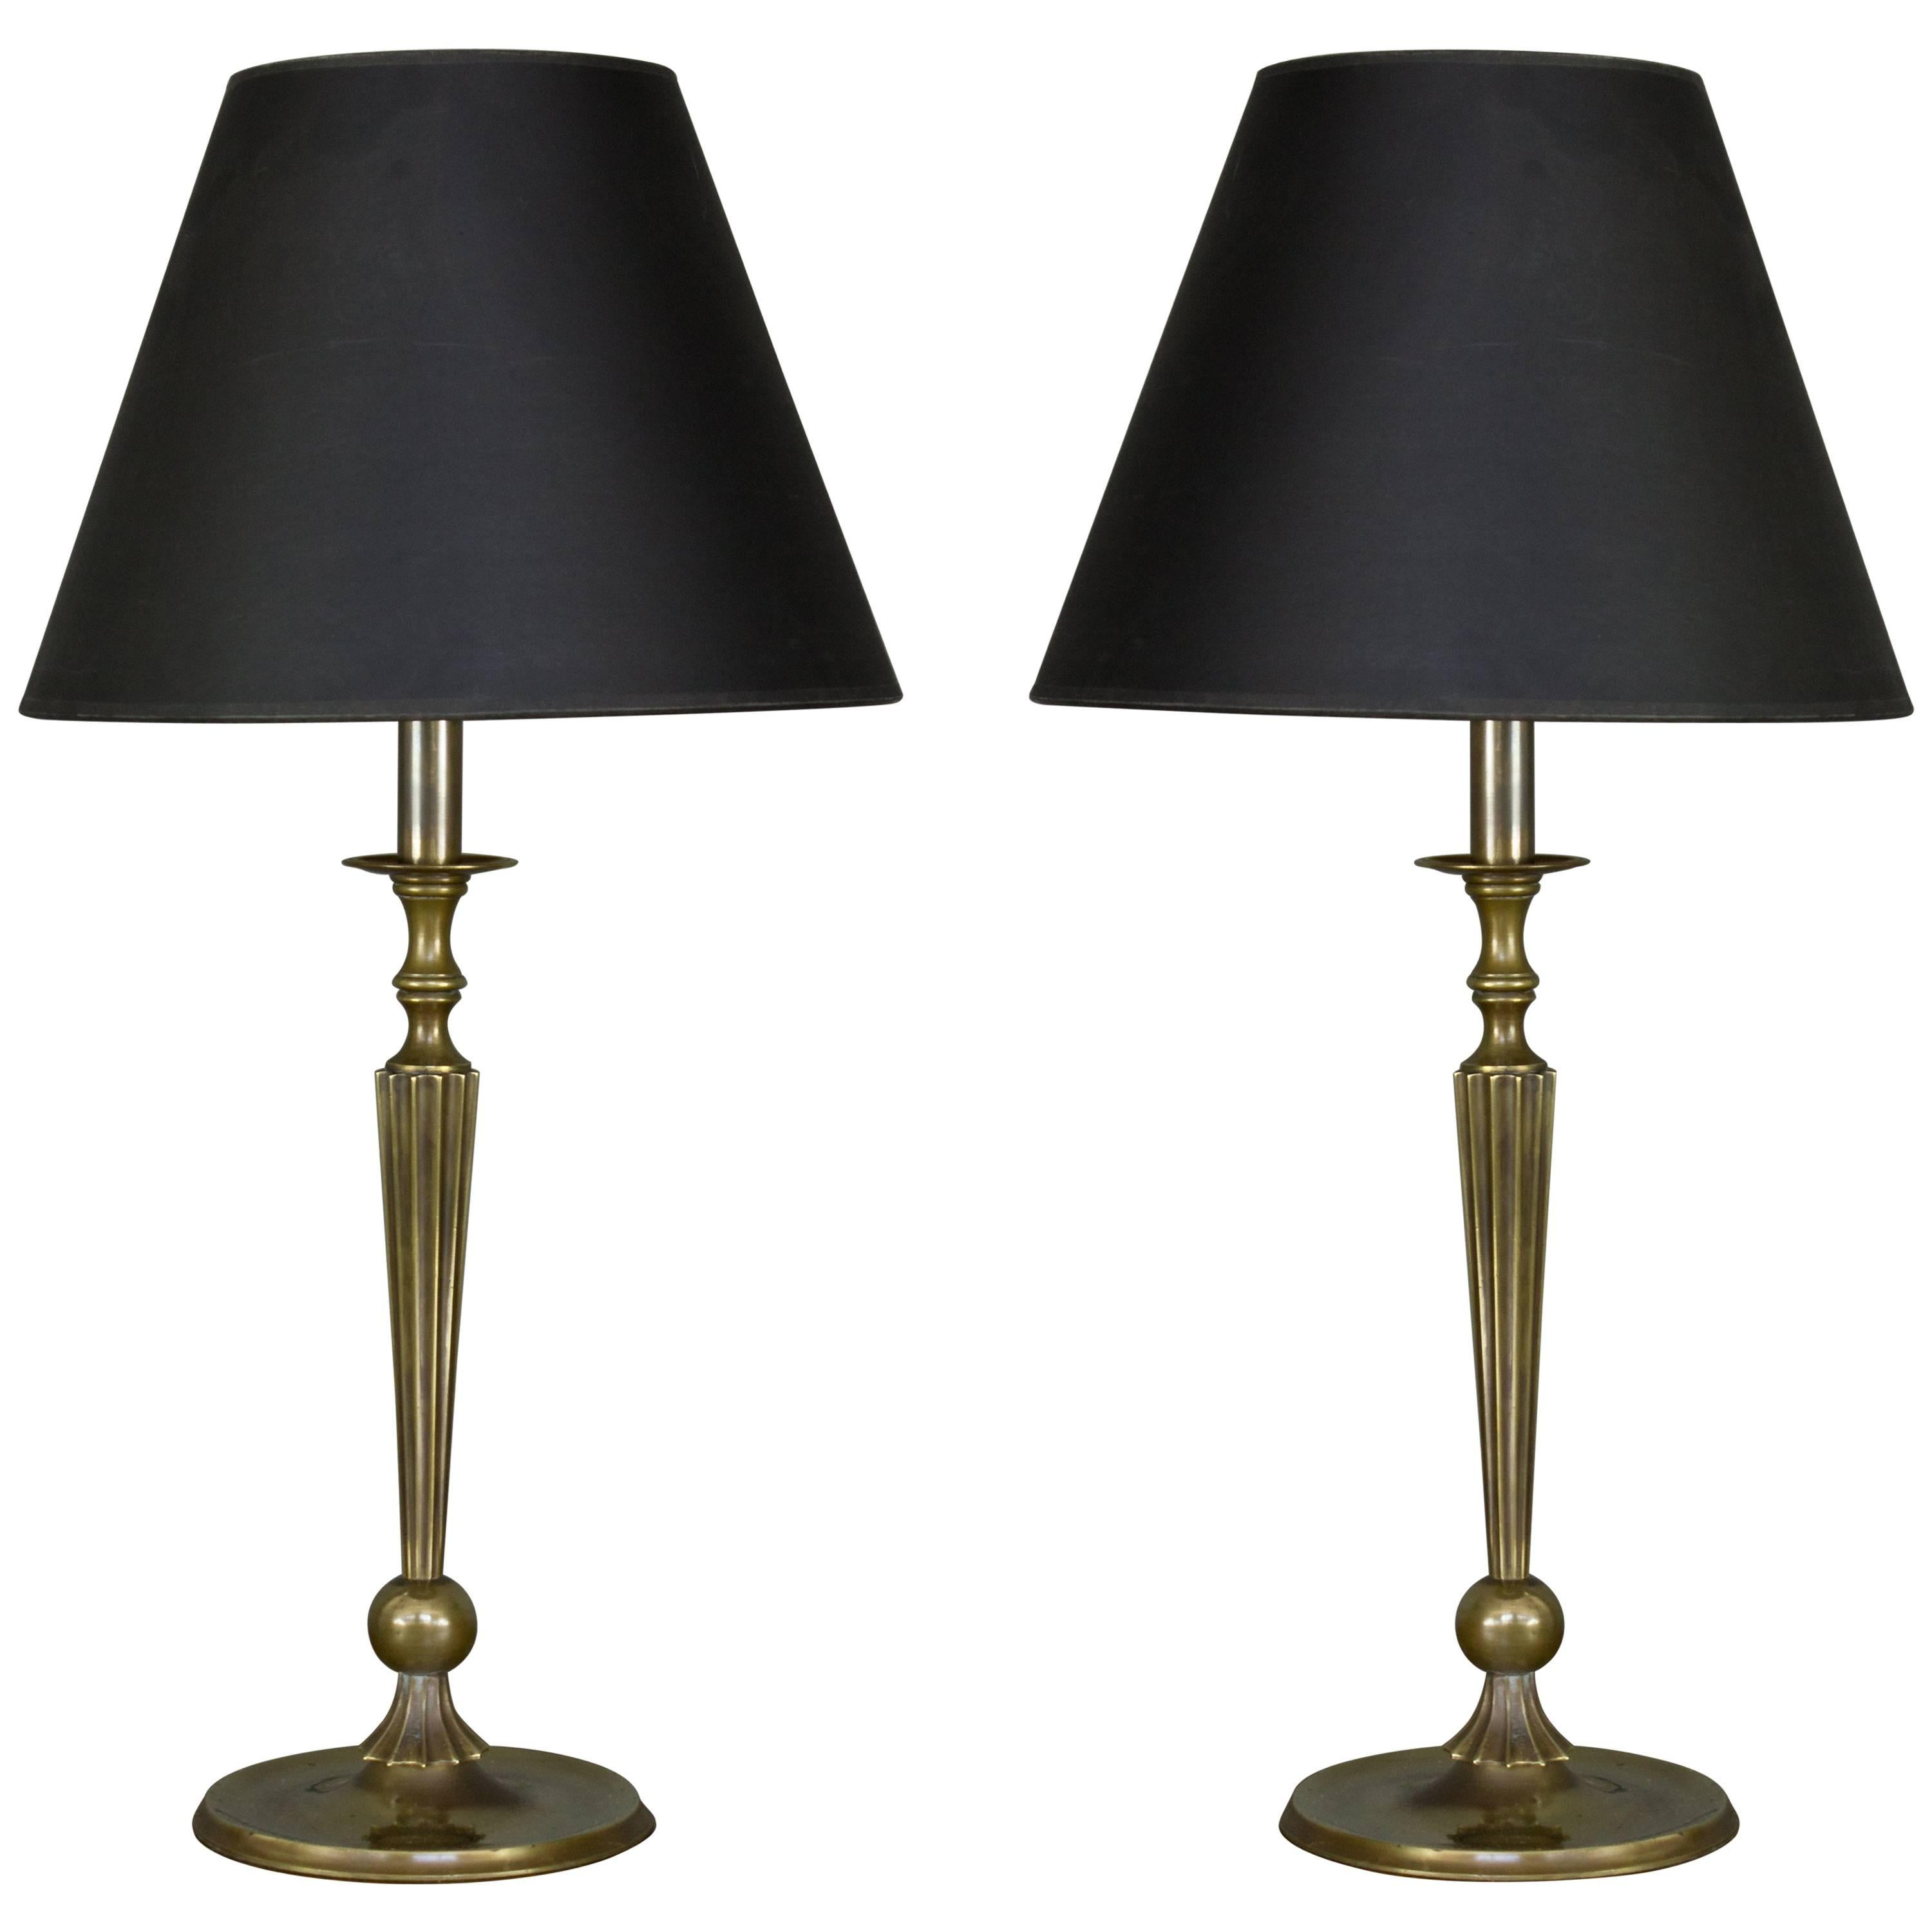 Pair of 1940s French Brass Table Lamps